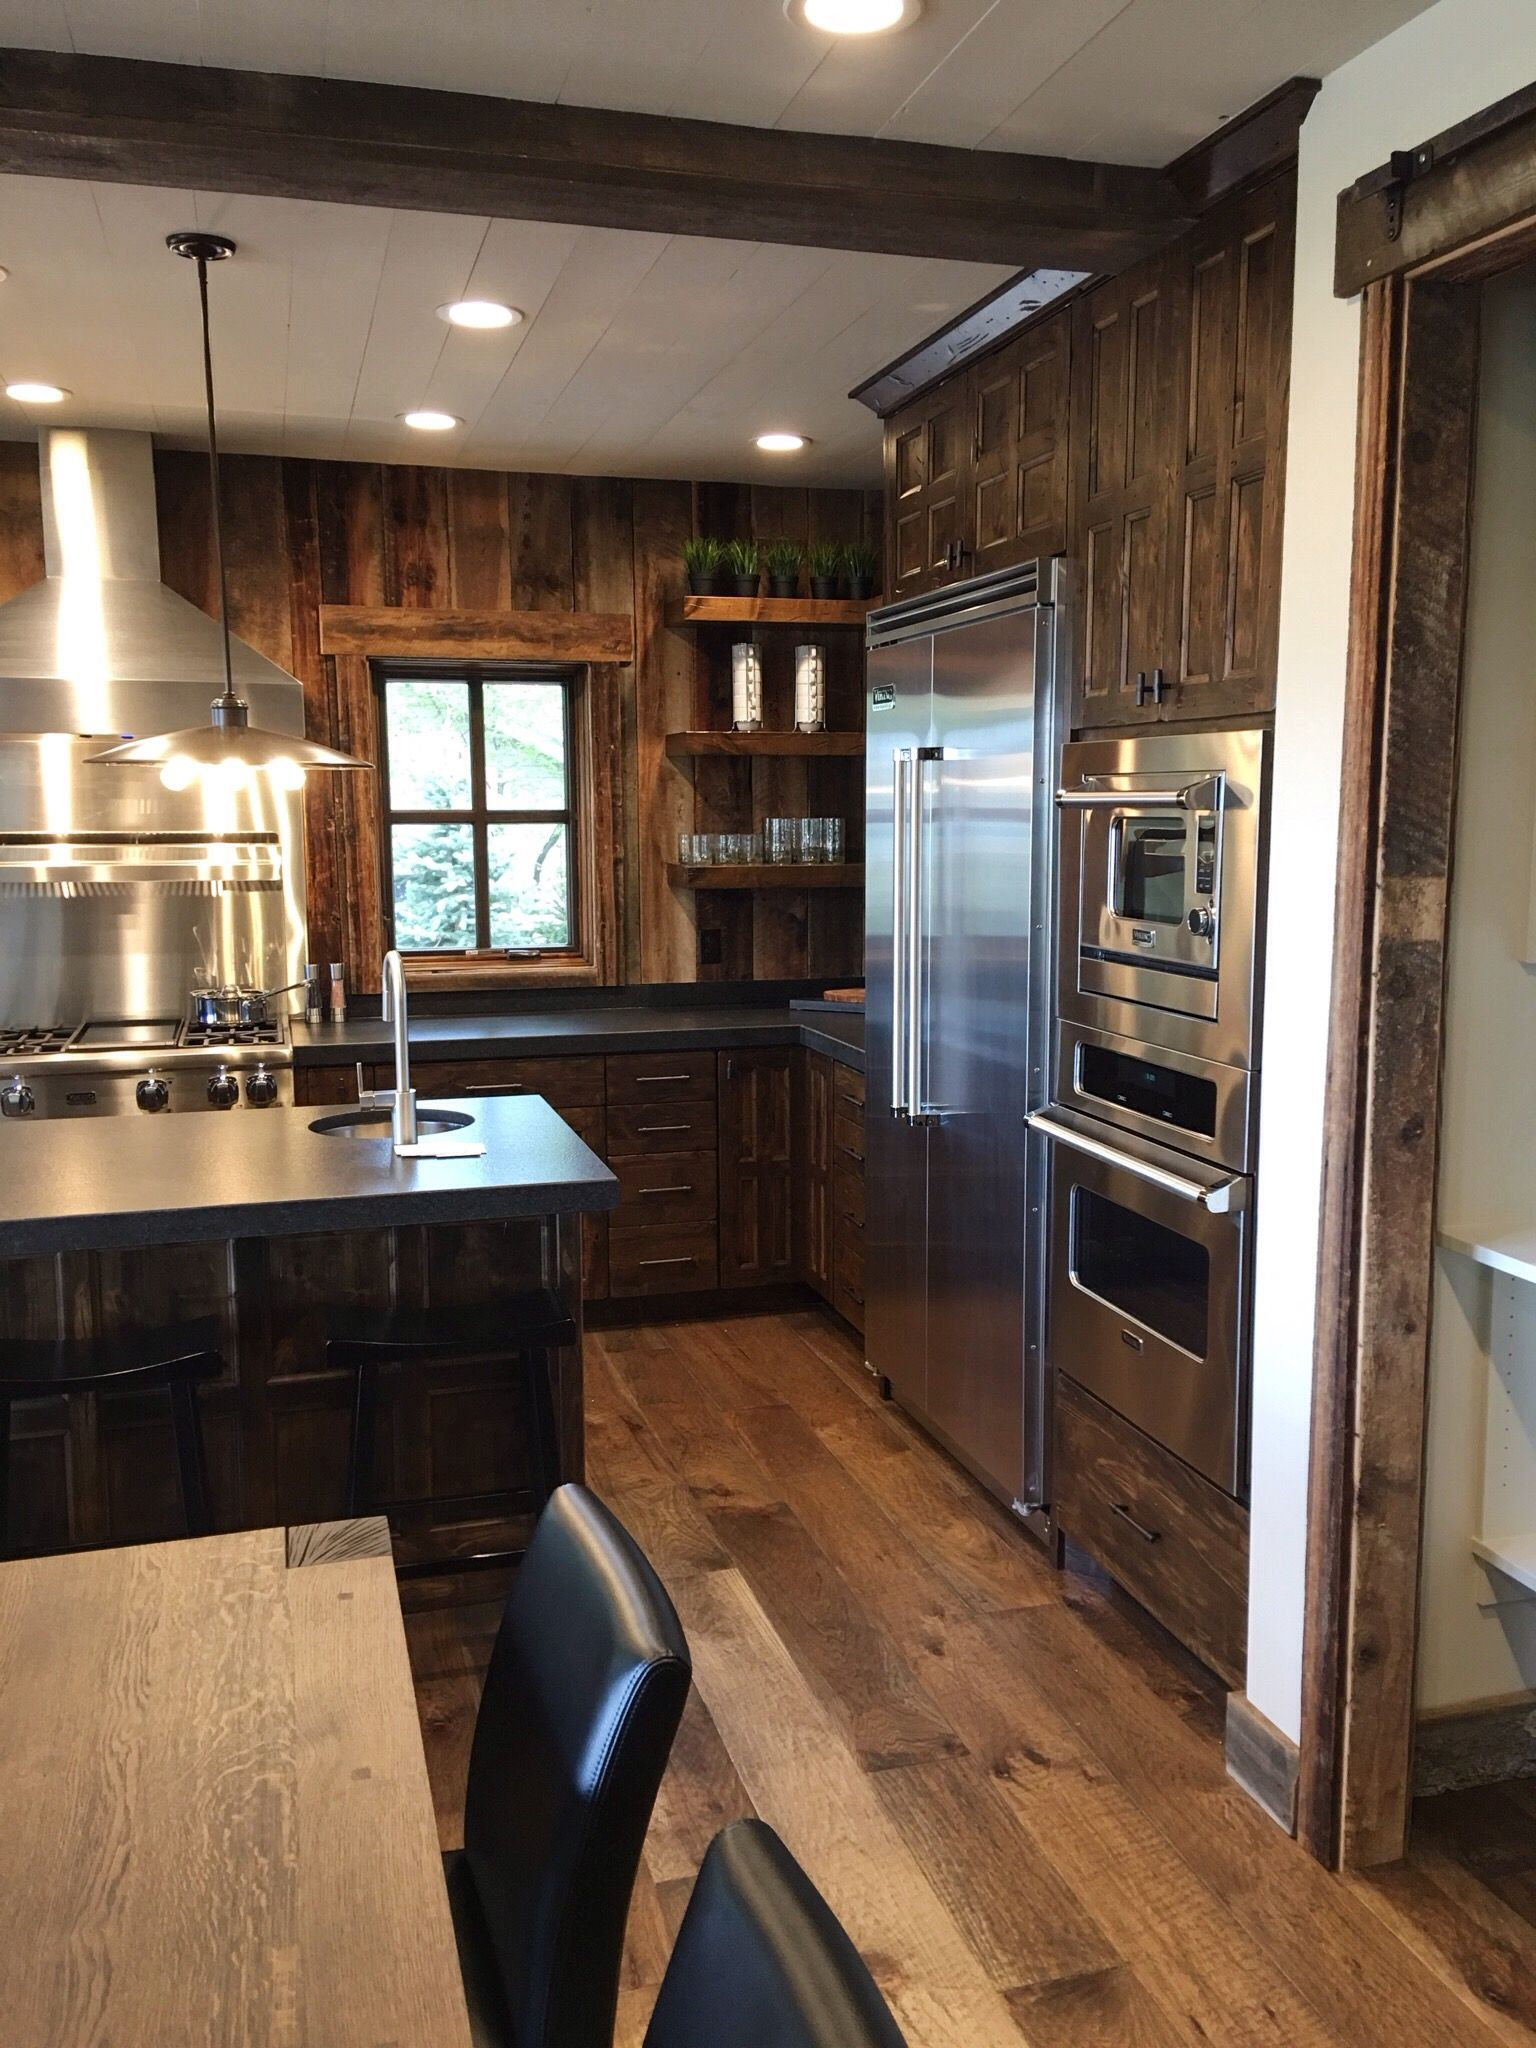 Beau Bear Lake Parade Of Homes Best Kitchen Judges Choice 2016. Cabinets By Premier  Cabinets Of